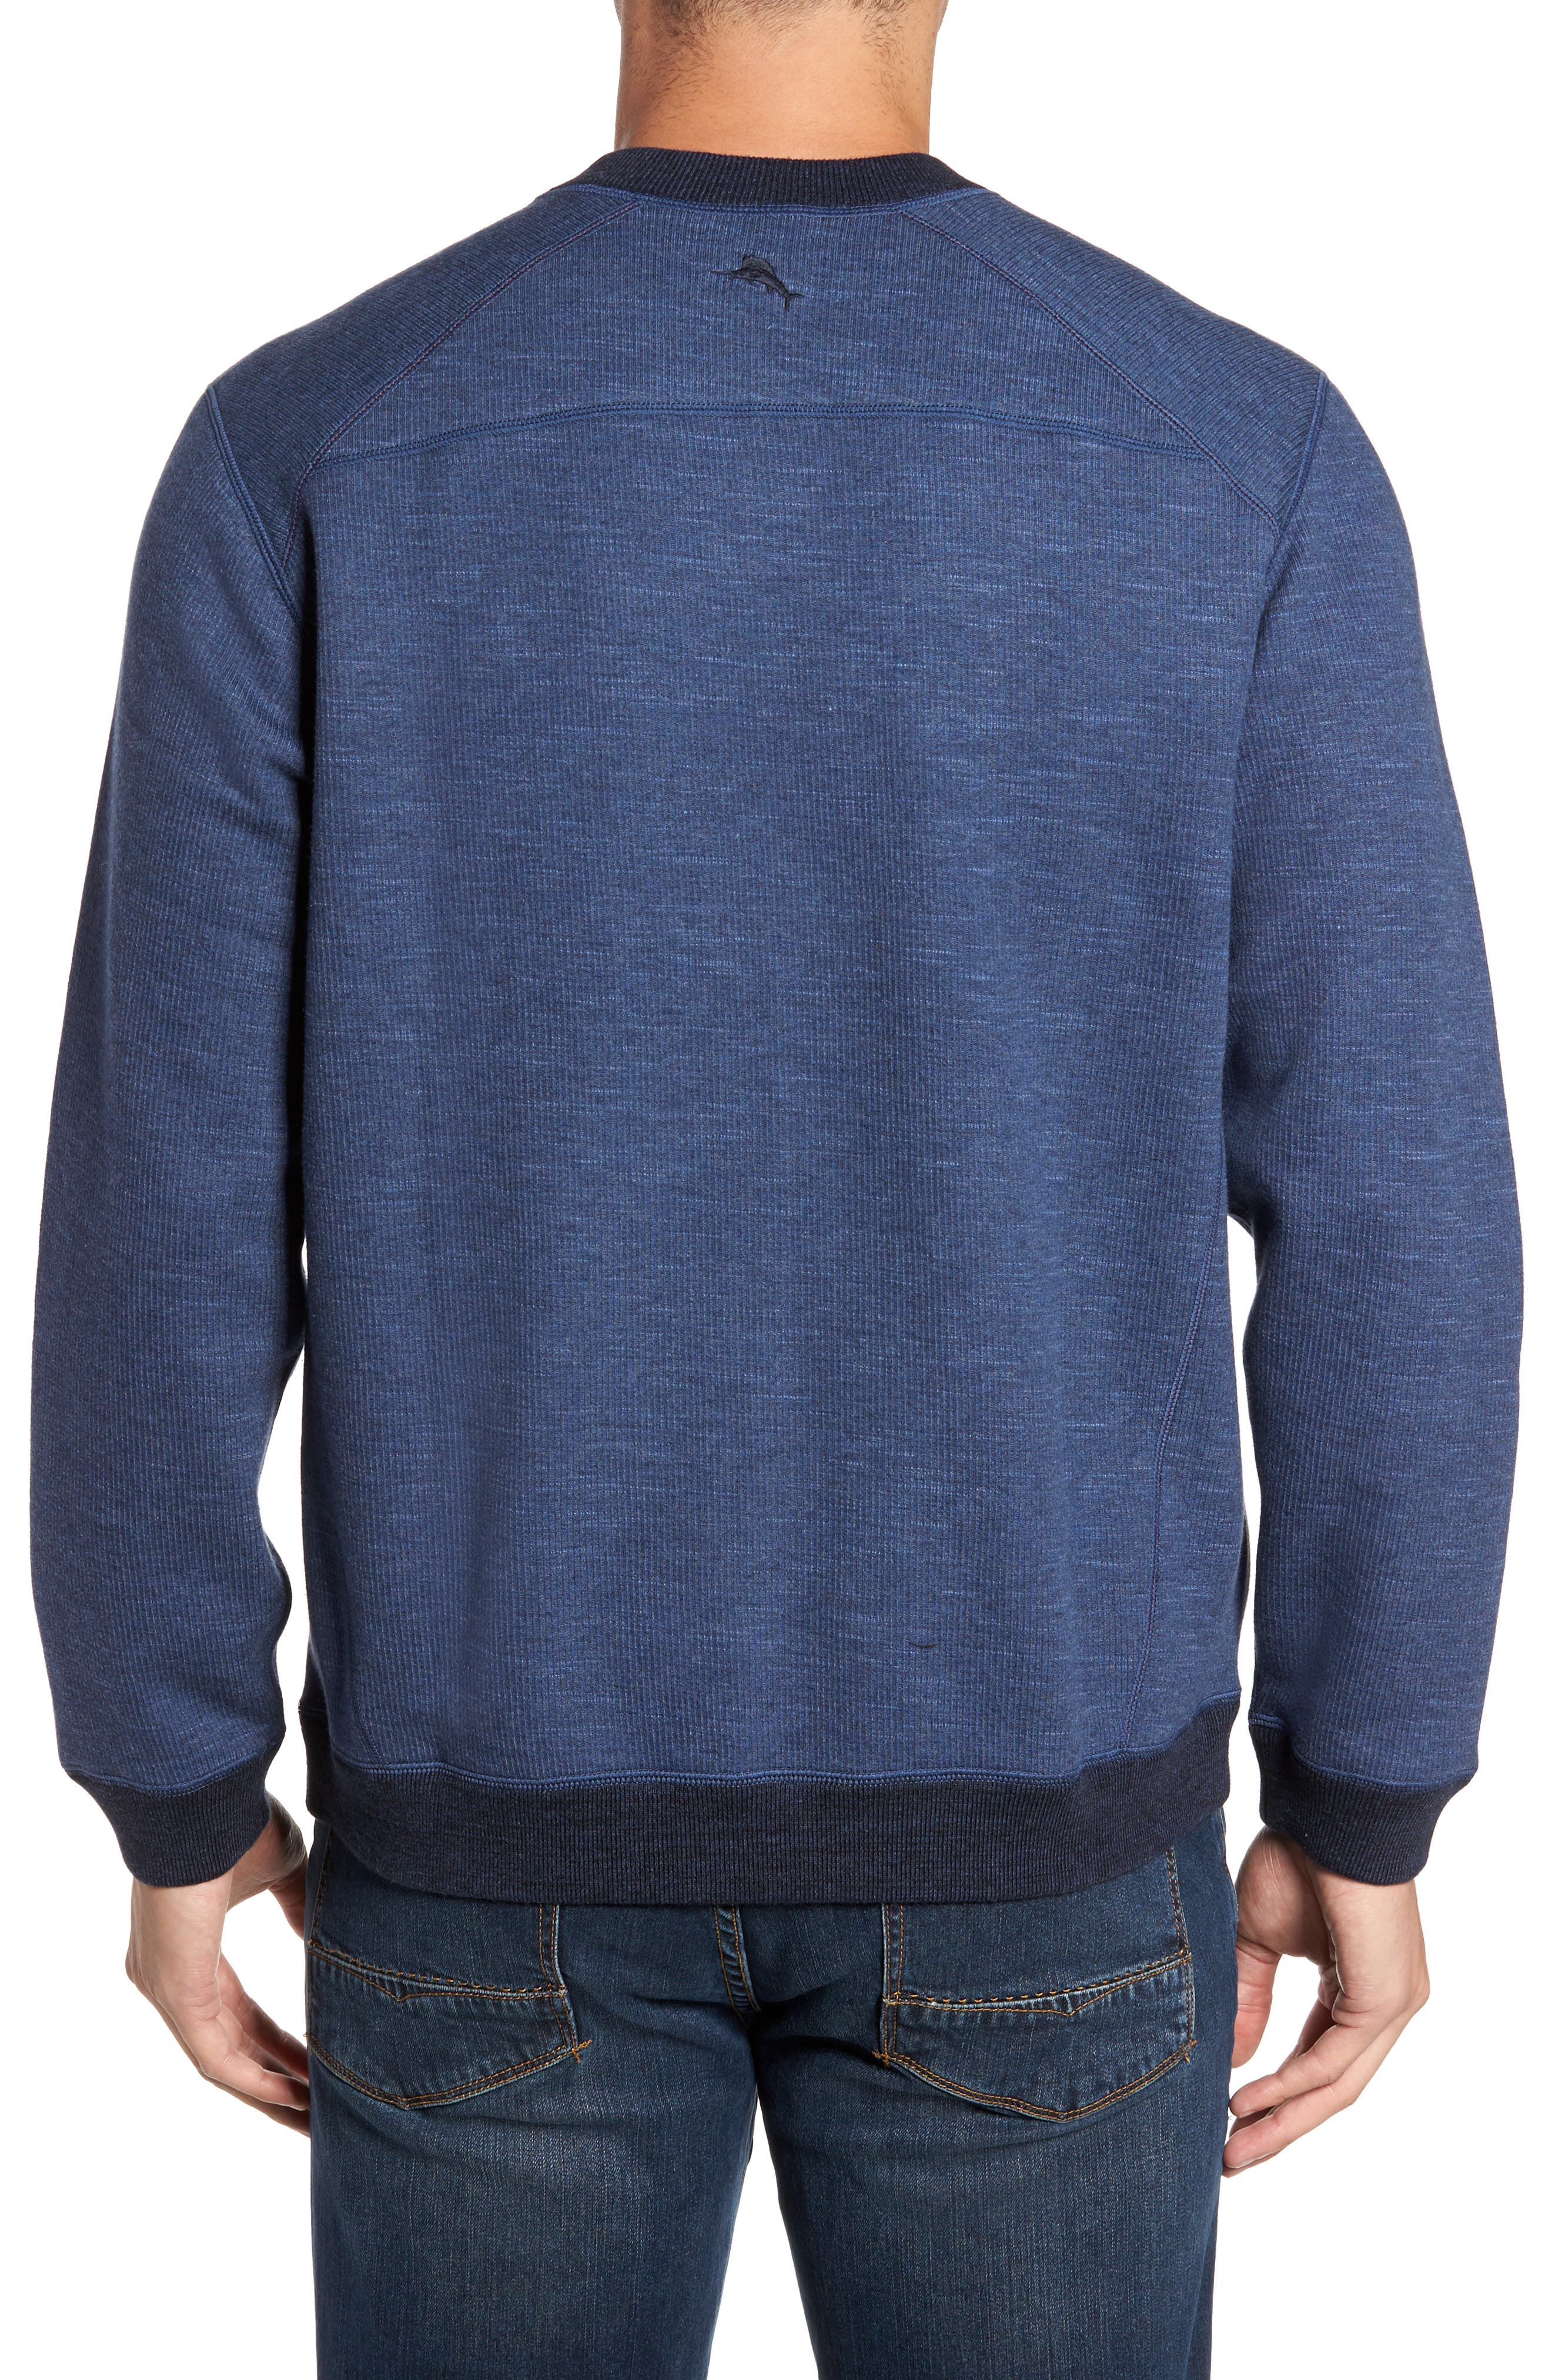 Flipsider Abaco Pullover,                             Alternate thumbnail 9, color,